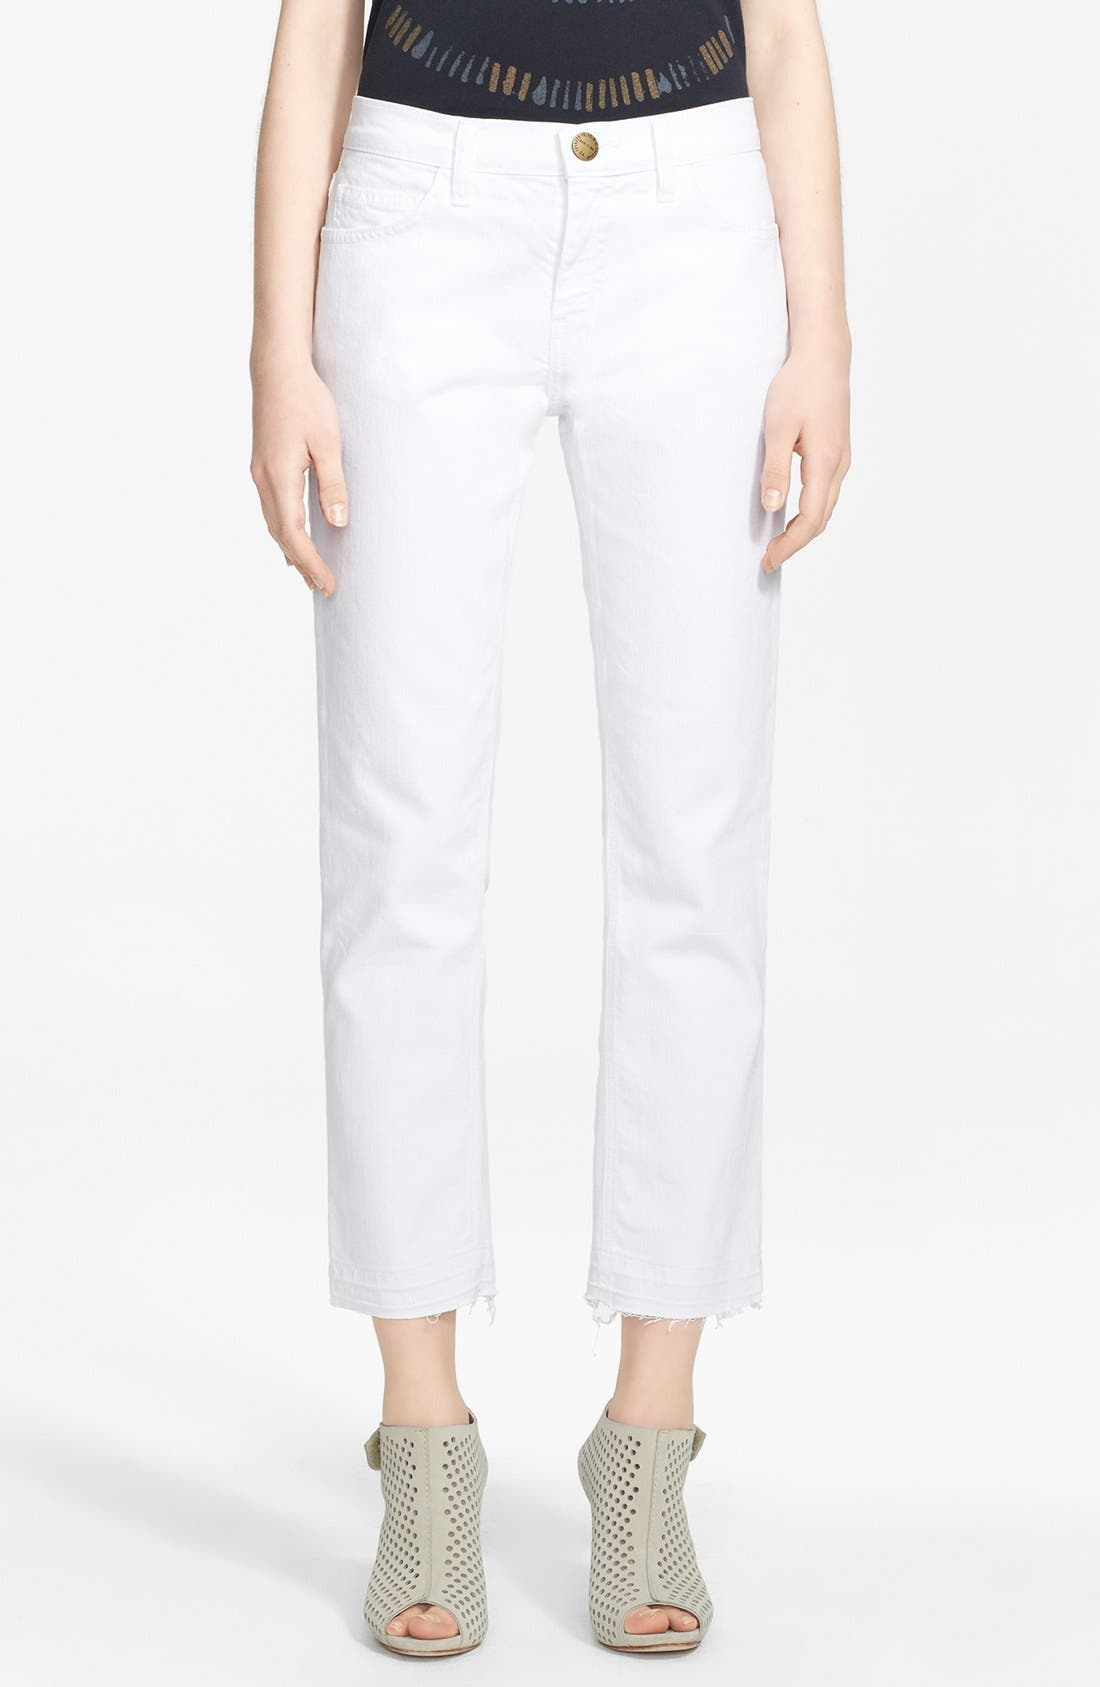 CURRENT/ELLIOTT 'The Cropped Straight' Straight Leg Crop Jeans, Main, color, 131